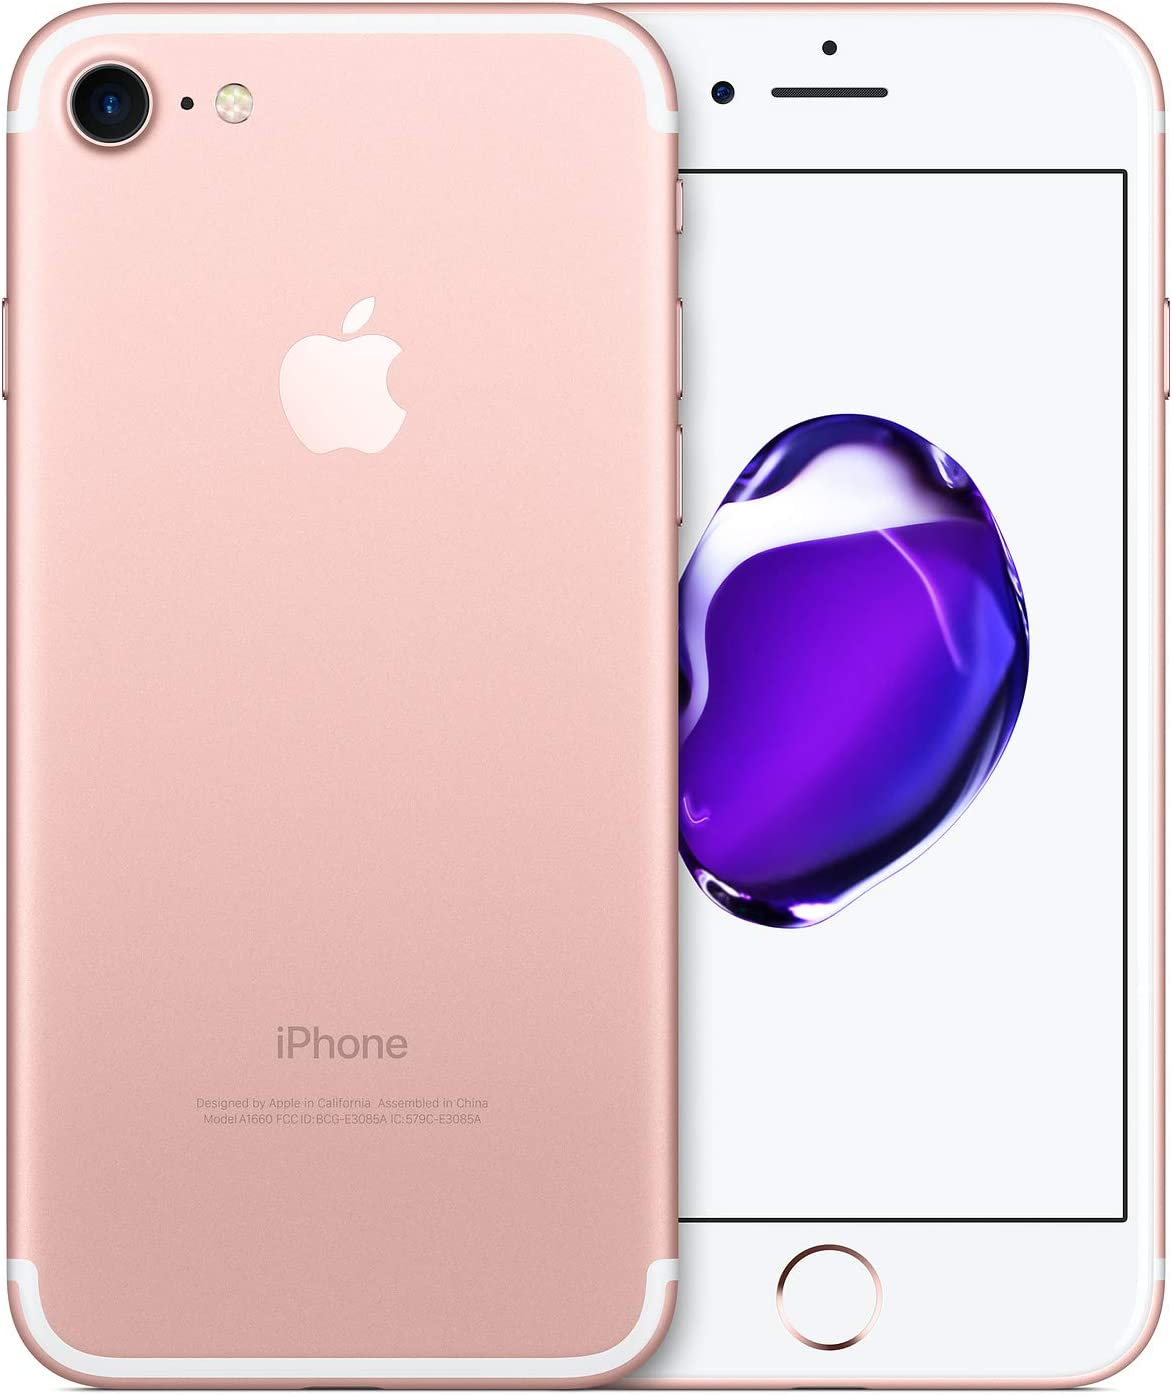 Apple iPhone 7, Boost Mobile, 32GB - Rose Gold (Refurbished)